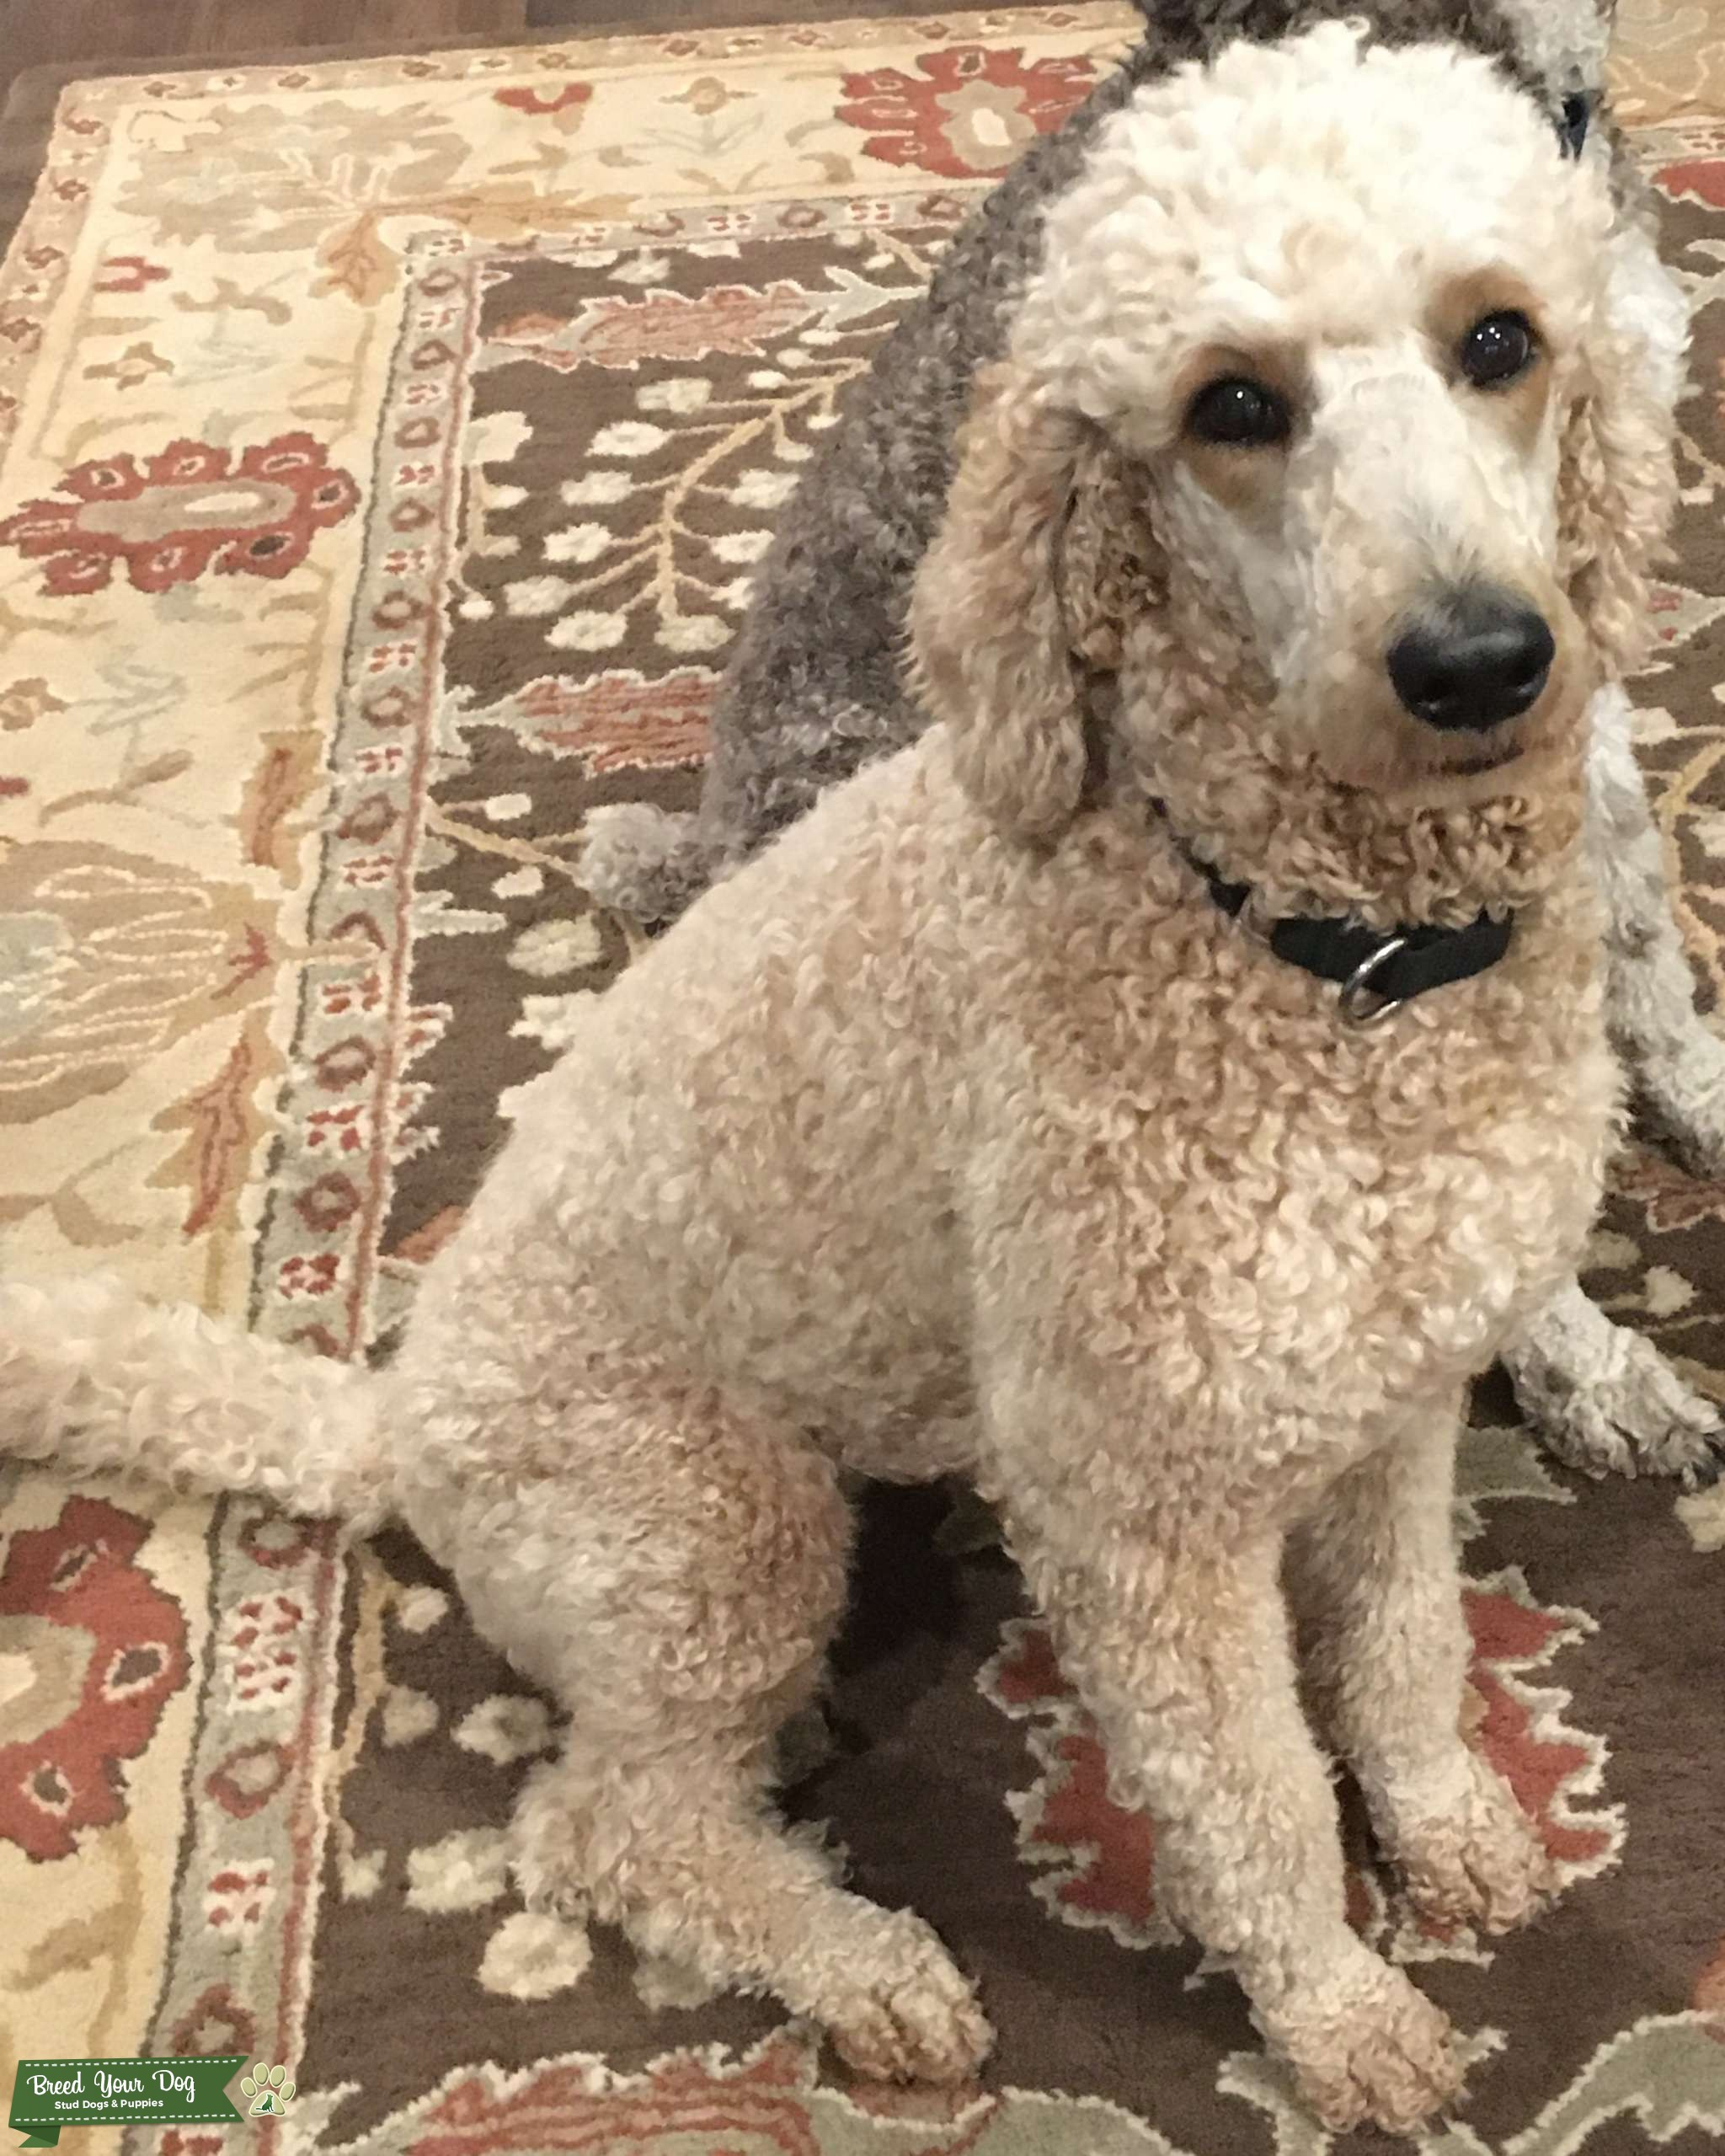 Cream Colored Standard Poodle looking for Goldendoodle mate Listing Image Big